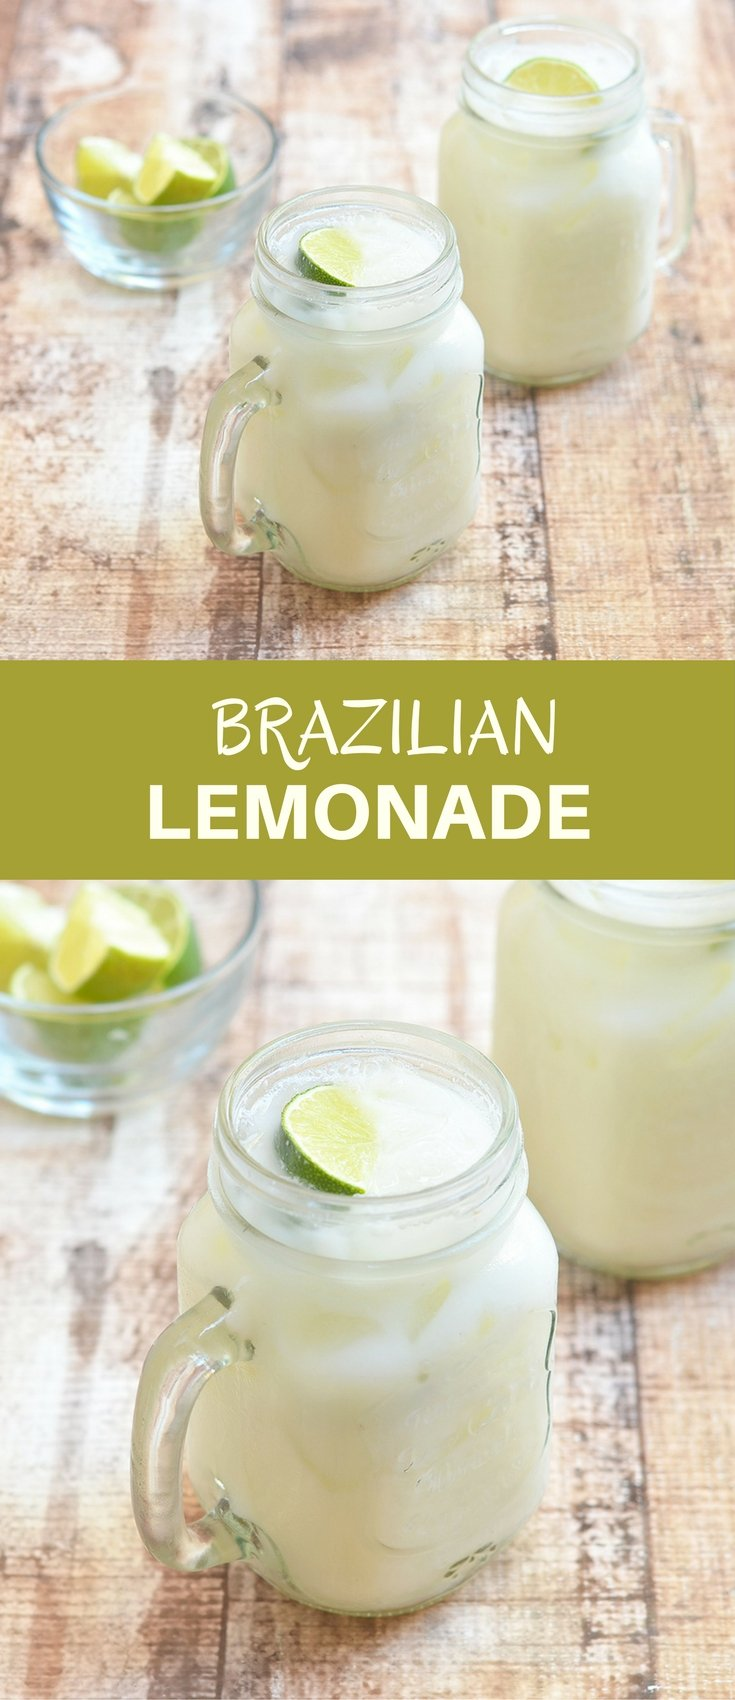 Brazilian Lemonade made with fresh limes and condensed milk is the perfect blend of sweet, tangy, and creamy. It's a delicious way to refresh and cool down this summer!